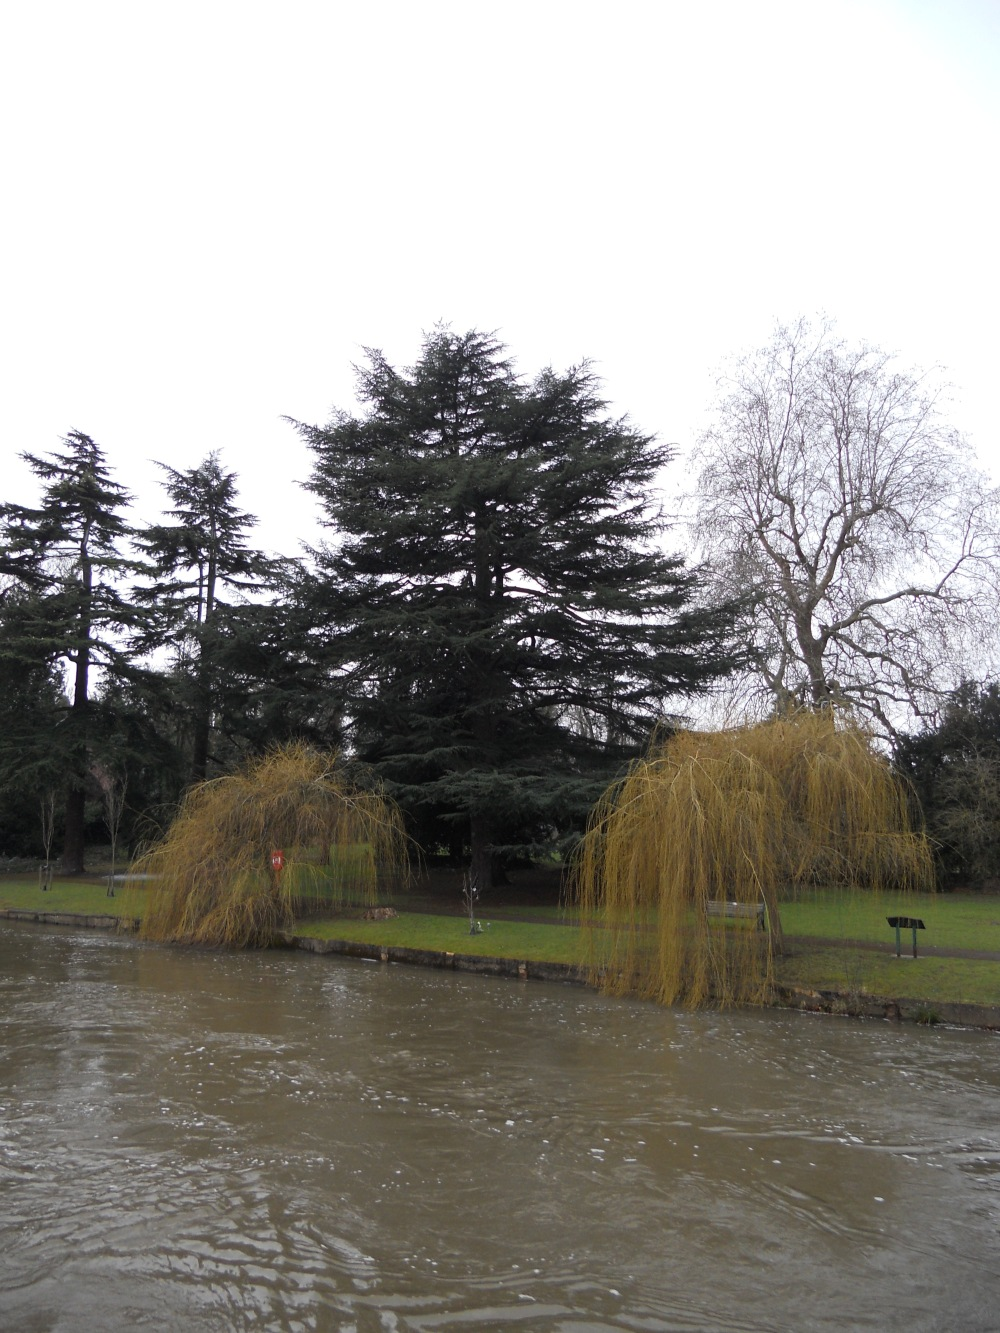 Guards Club Park willow trees by the River Thames